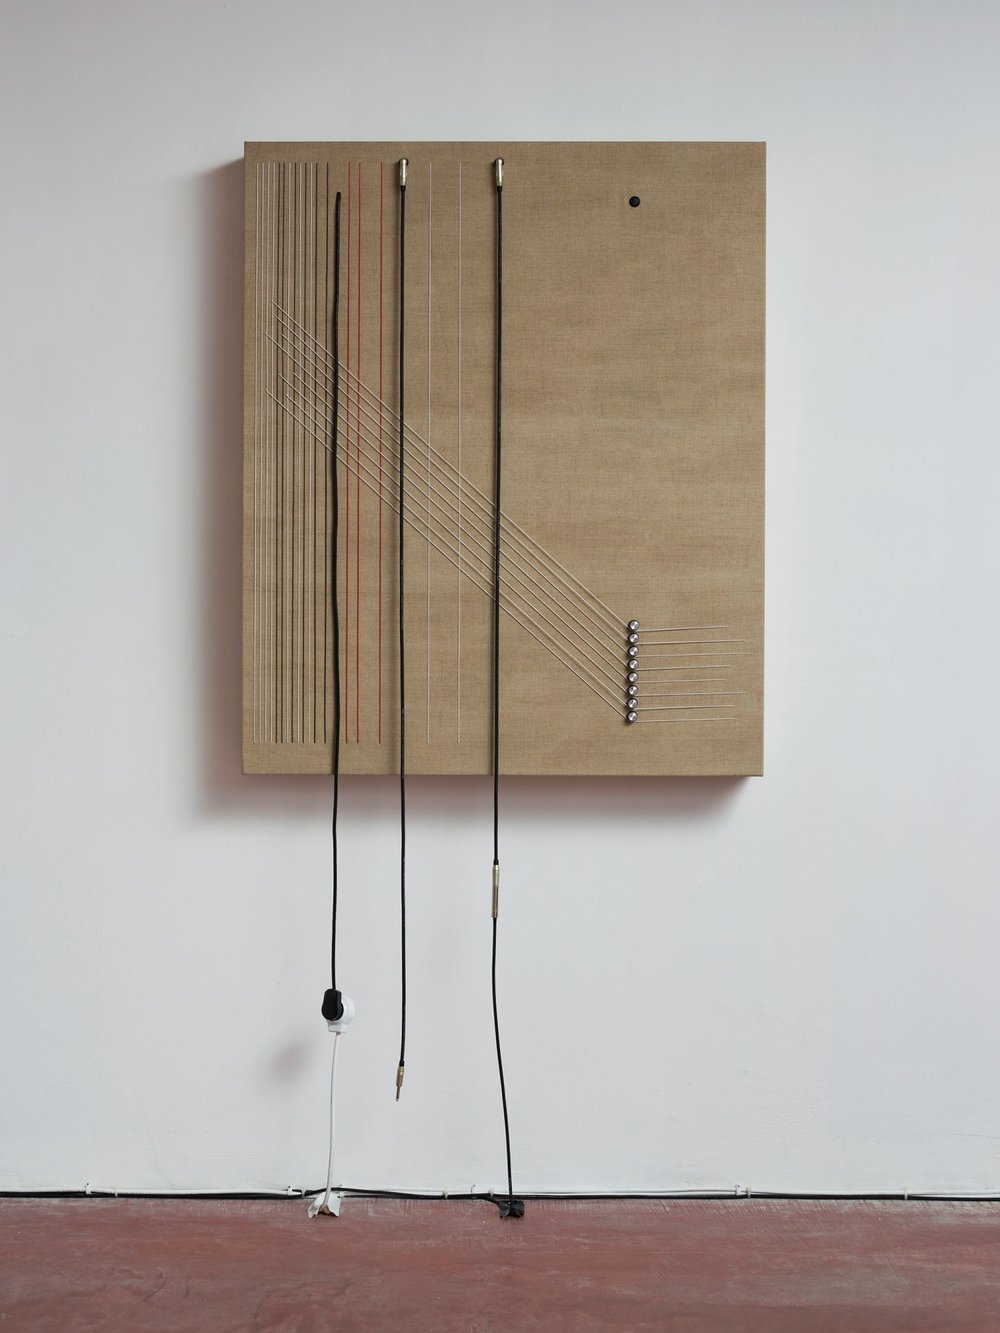 Transition, 2016, Wood, canvas, electronics, cables, knobs, speakers, 46 1/10 × 38 × 5 1/2""